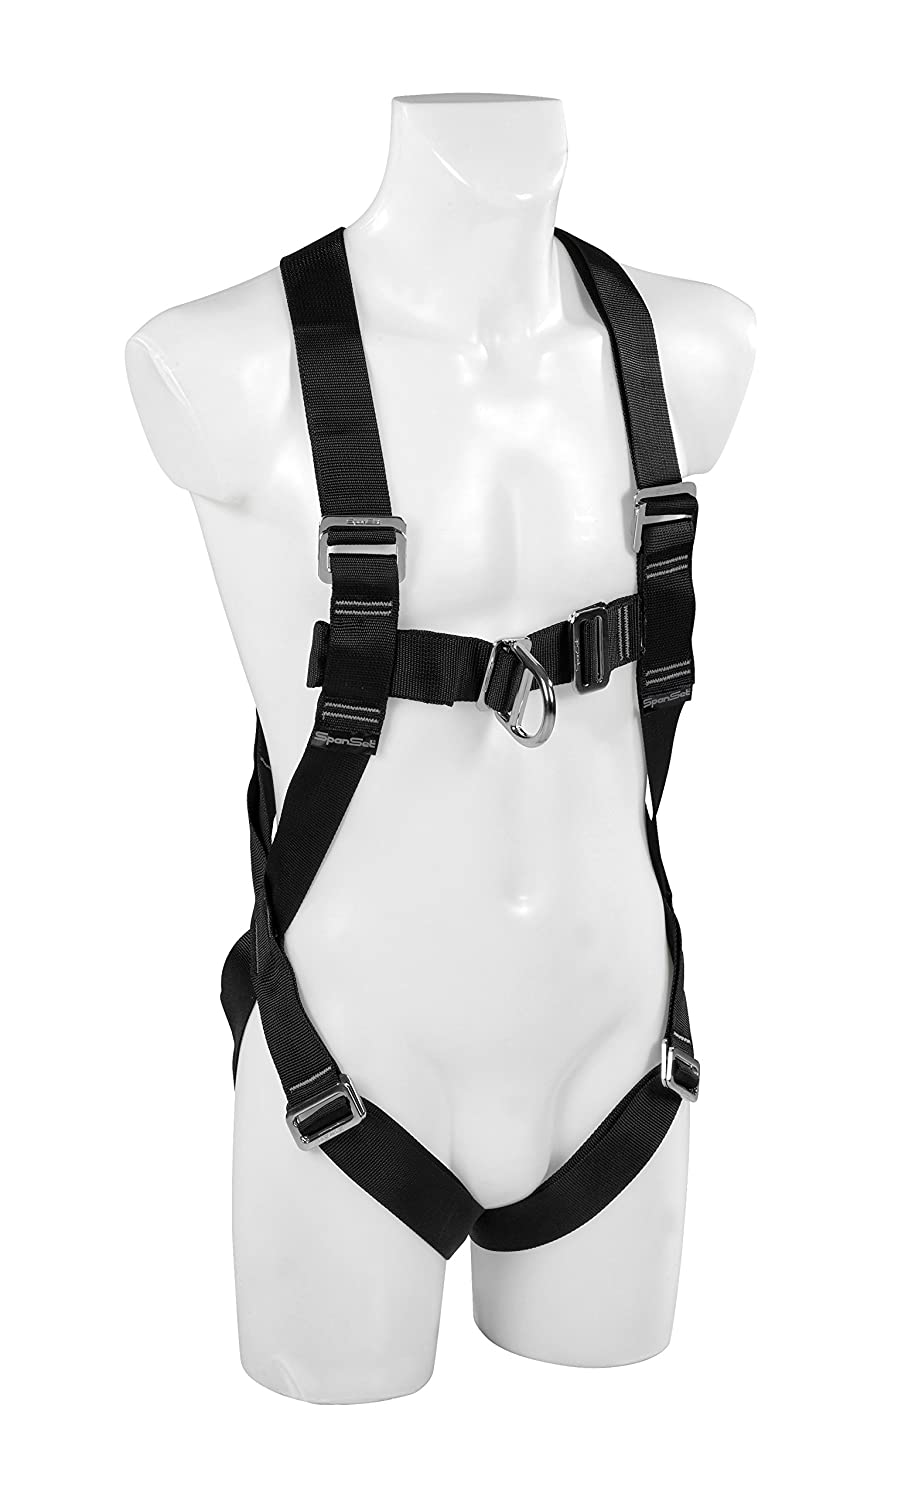 SpanSet 2-X full 2 point harness for work restraint and fall ...